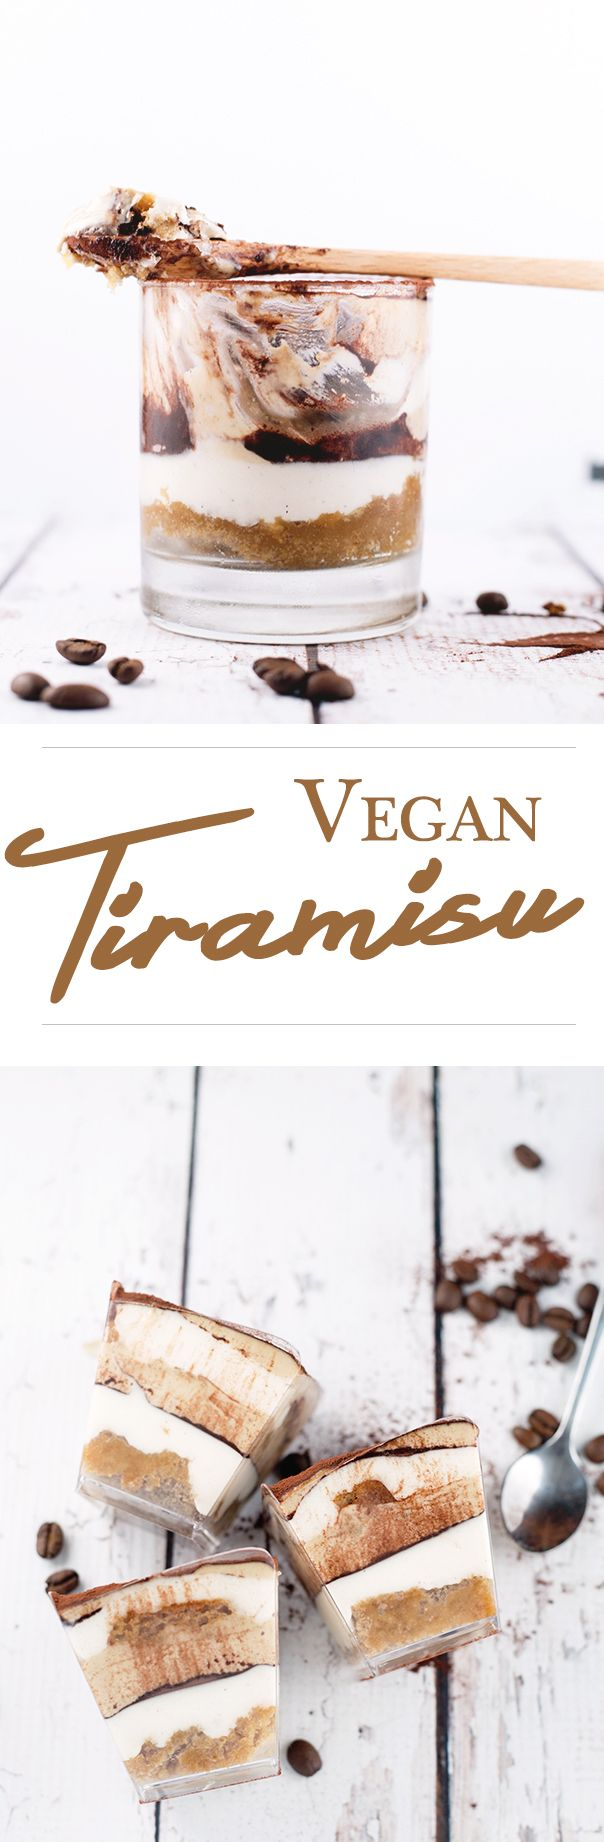 "Decadent Tiramisu - you won't believe it's 100% Vegan. Coffee/Kahlua Soaked Sponge and Vegan ""Mascarpone"" Filling-- Substitute other sweetener if you can't do agave, use fodmap friendly flour/mixed flours, use redwine vinegar, substitute tolerated nuts for cashews!"